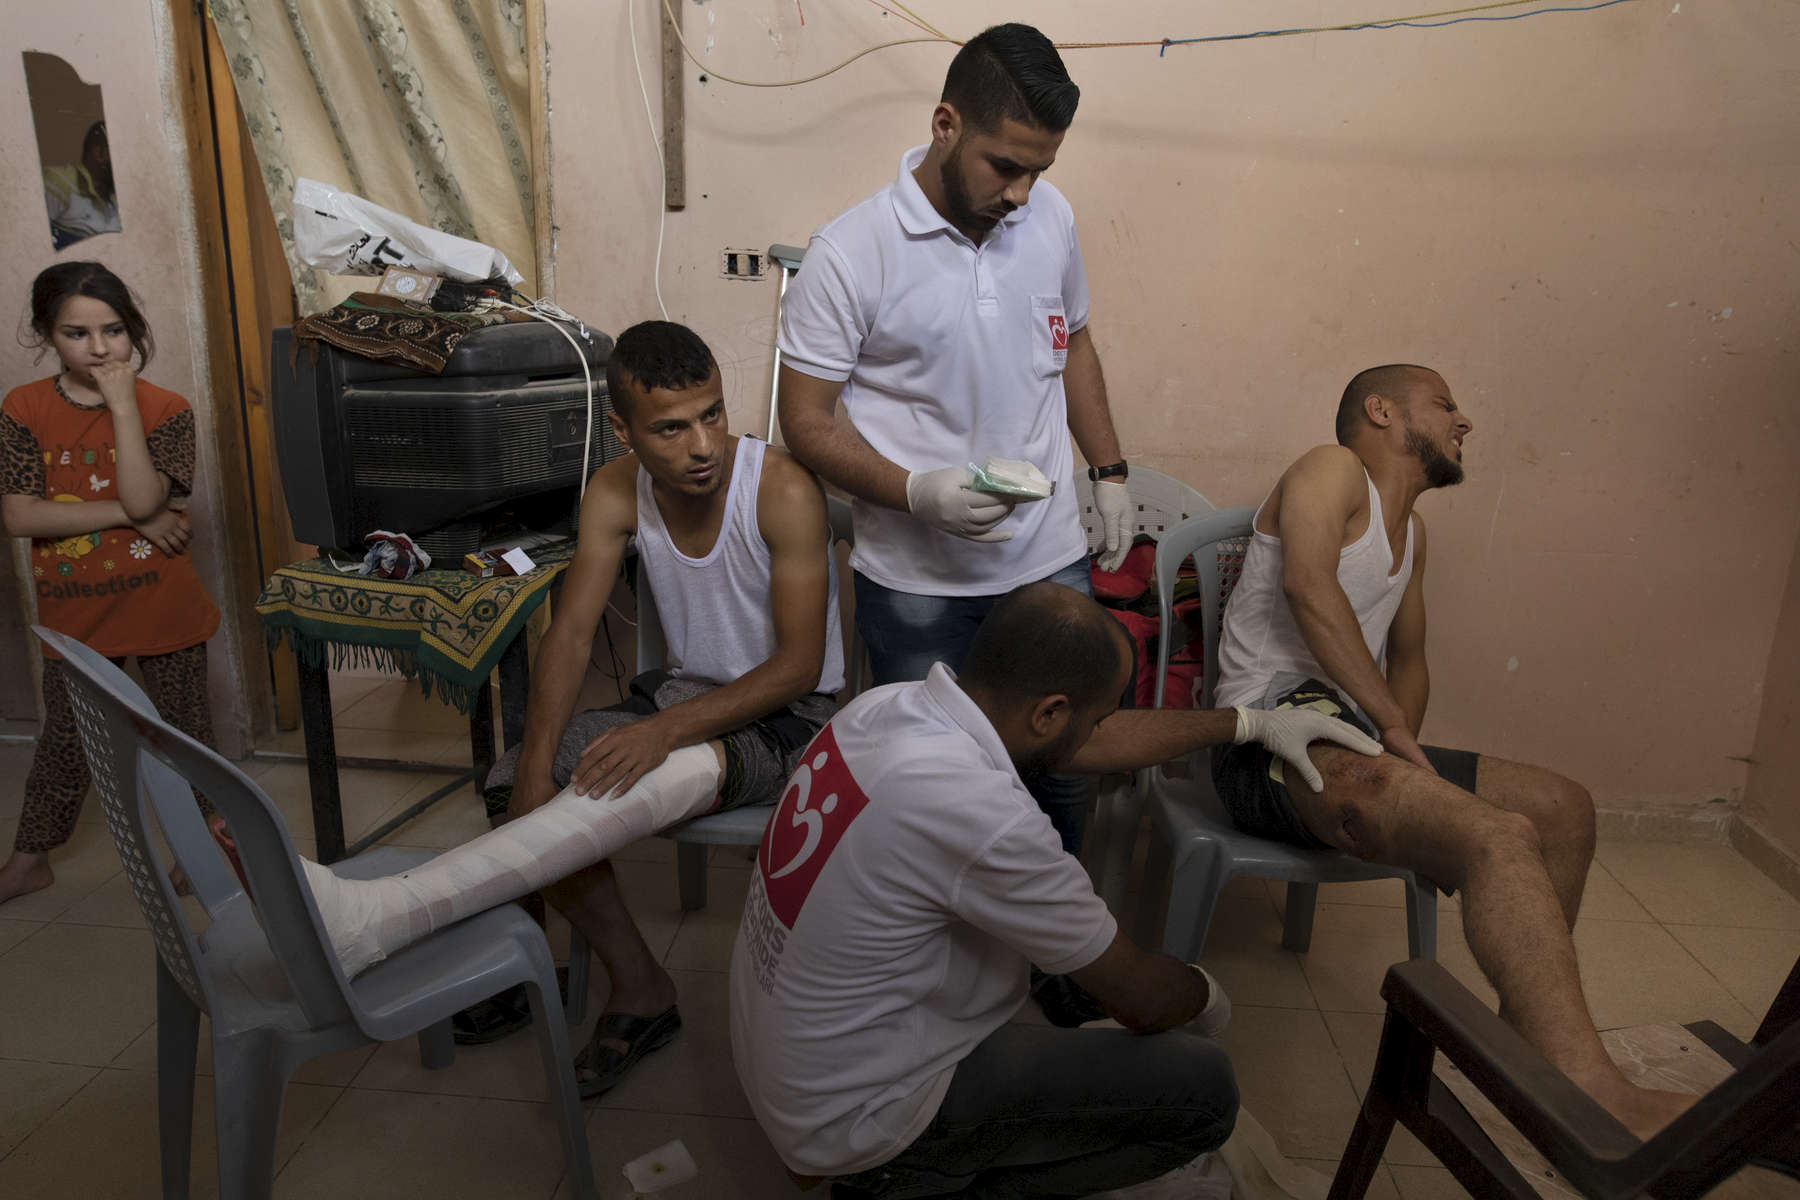 GAZA CITY, GAZA STRIP- MAY 23,2018 Doctors Worldwide,a Turkish ngo gives medical treatment to gunshot victims inside their homes on May 23,2018 in Gaza city, Gaza strip. The world's largest open air prison along the Israel-Gaza border. Everyone is well aware that Gaza's two million inhabitants are trapped in a cycle of violence and poverty, created by policies and political decisions on both sides. The problems and complications affecting Gaza today are overwhelming. The world, seemingly accustomed to the suffering of the Gazan people turns a blind eye. (Photo by Paula Bronstein )